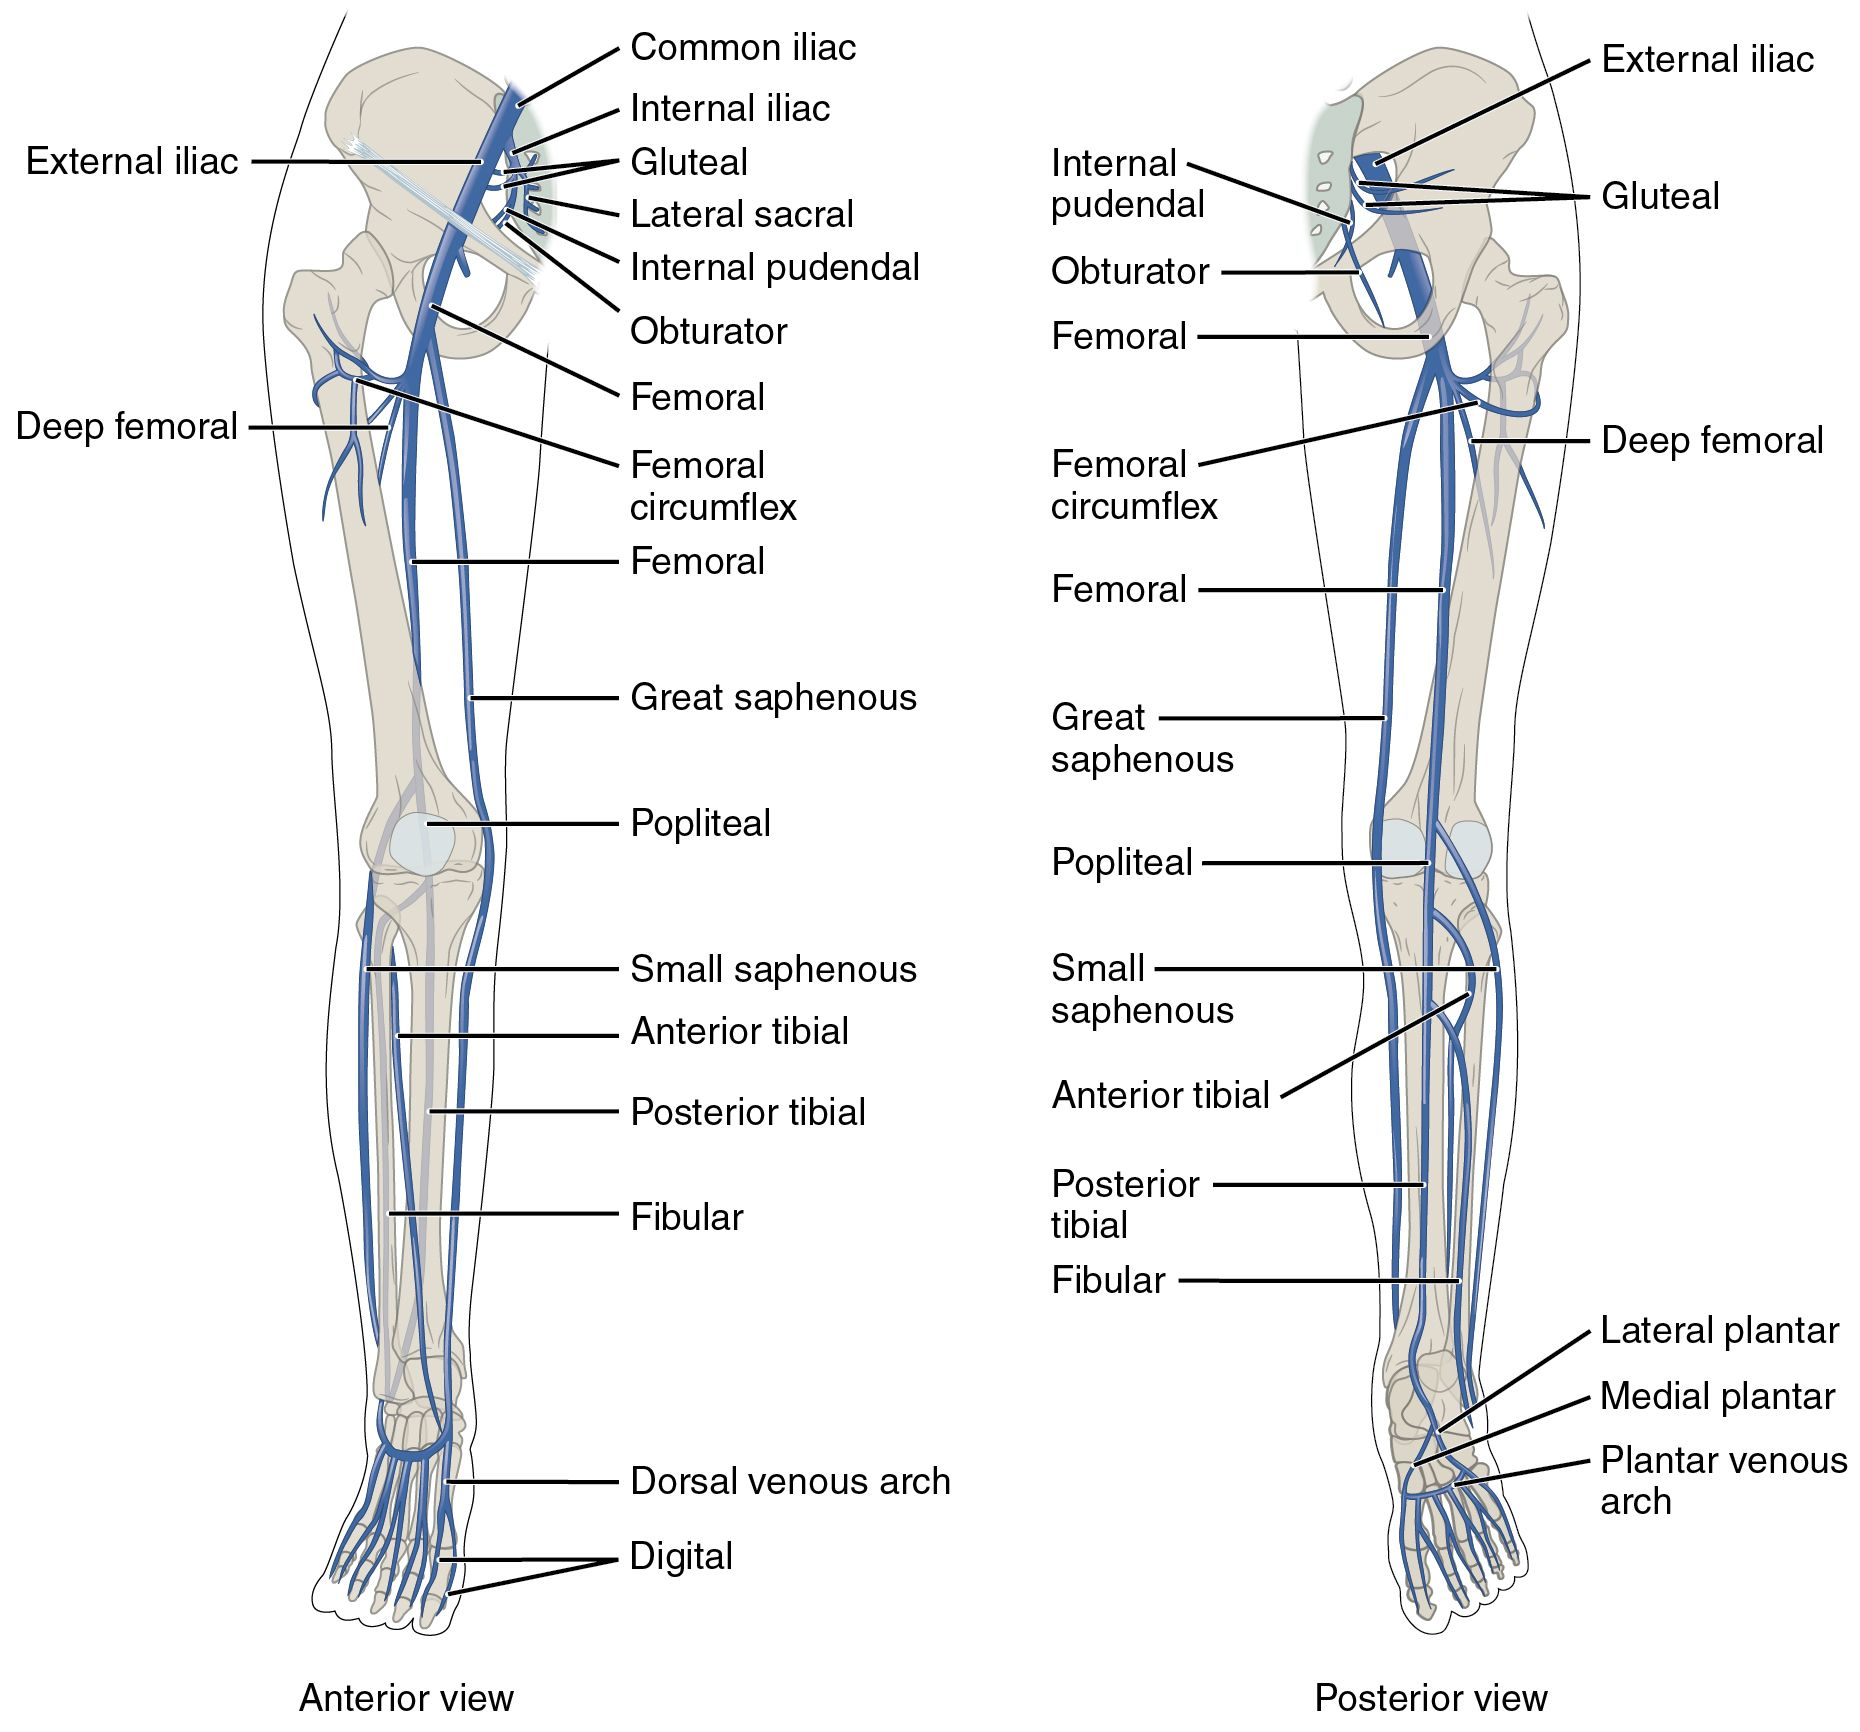 The Left Panel Shows The Anterior View Of Veins In The